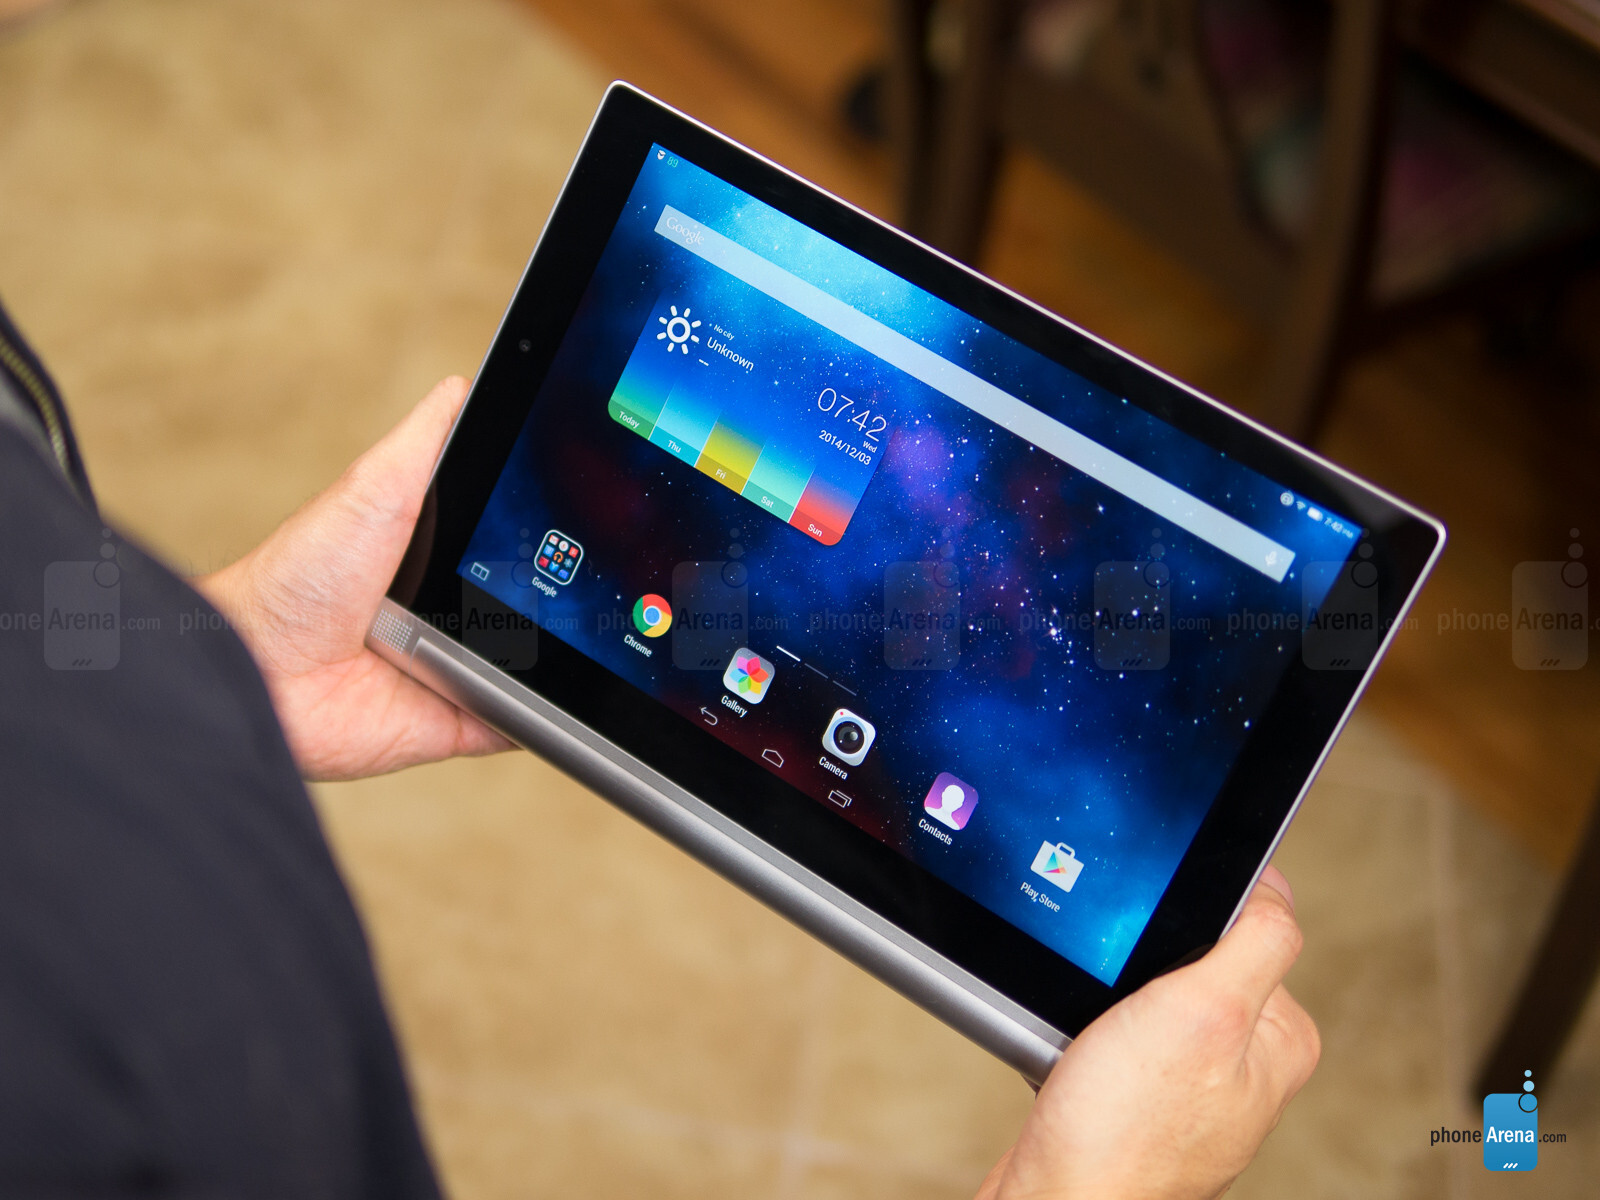 Lenovo Yoga Tablet 2 10-inch (Android) Review - PhoneArena